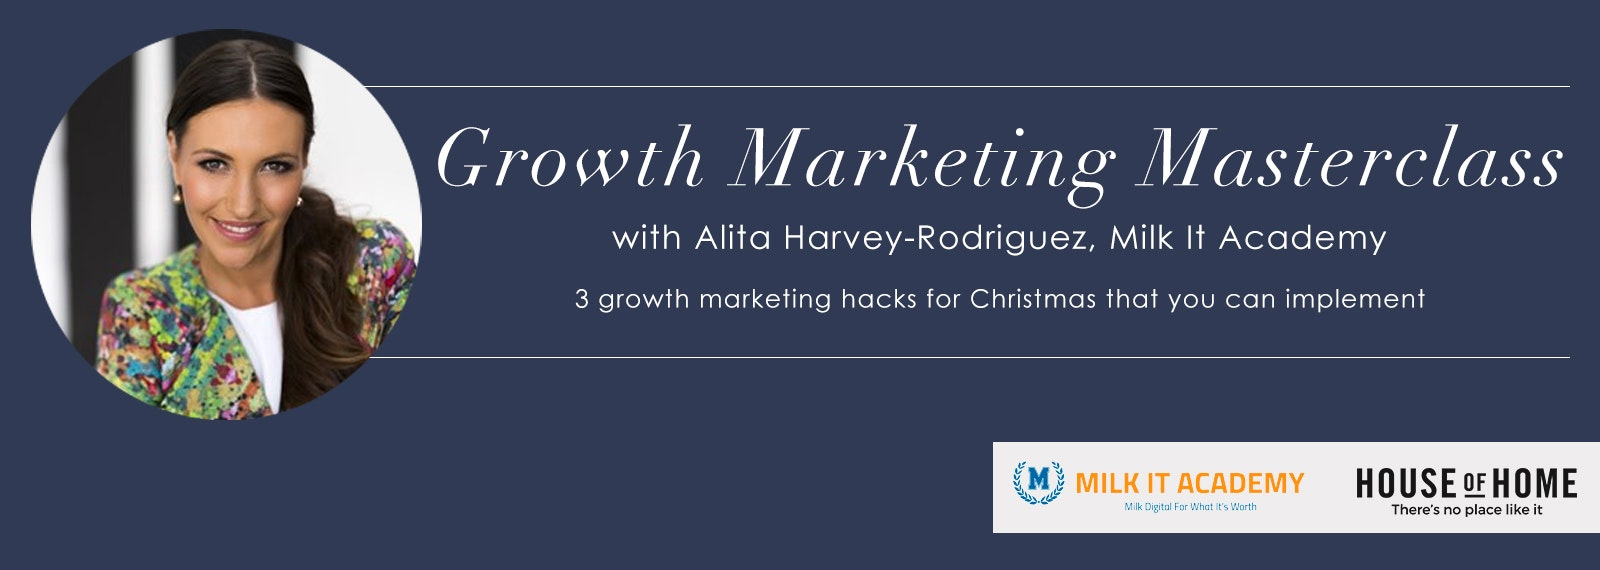 Growth Marketing Masterclass